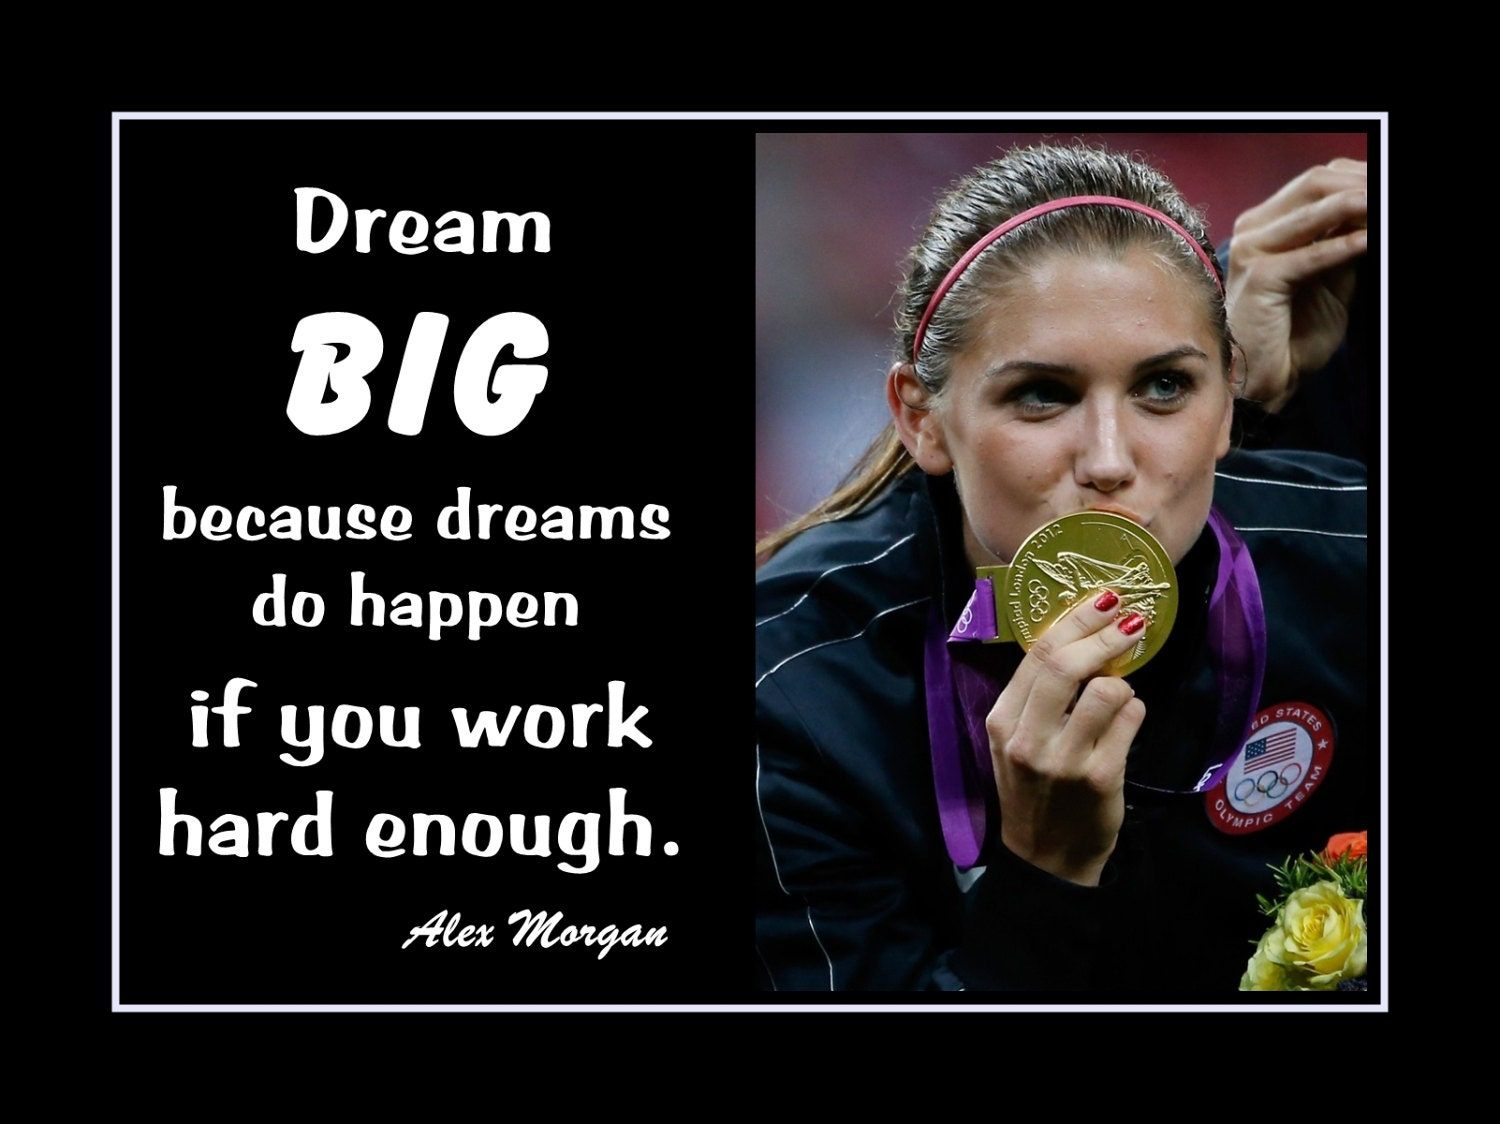 Alex Morgan Girls Soccer Inspiration Poster Dream Big Quote